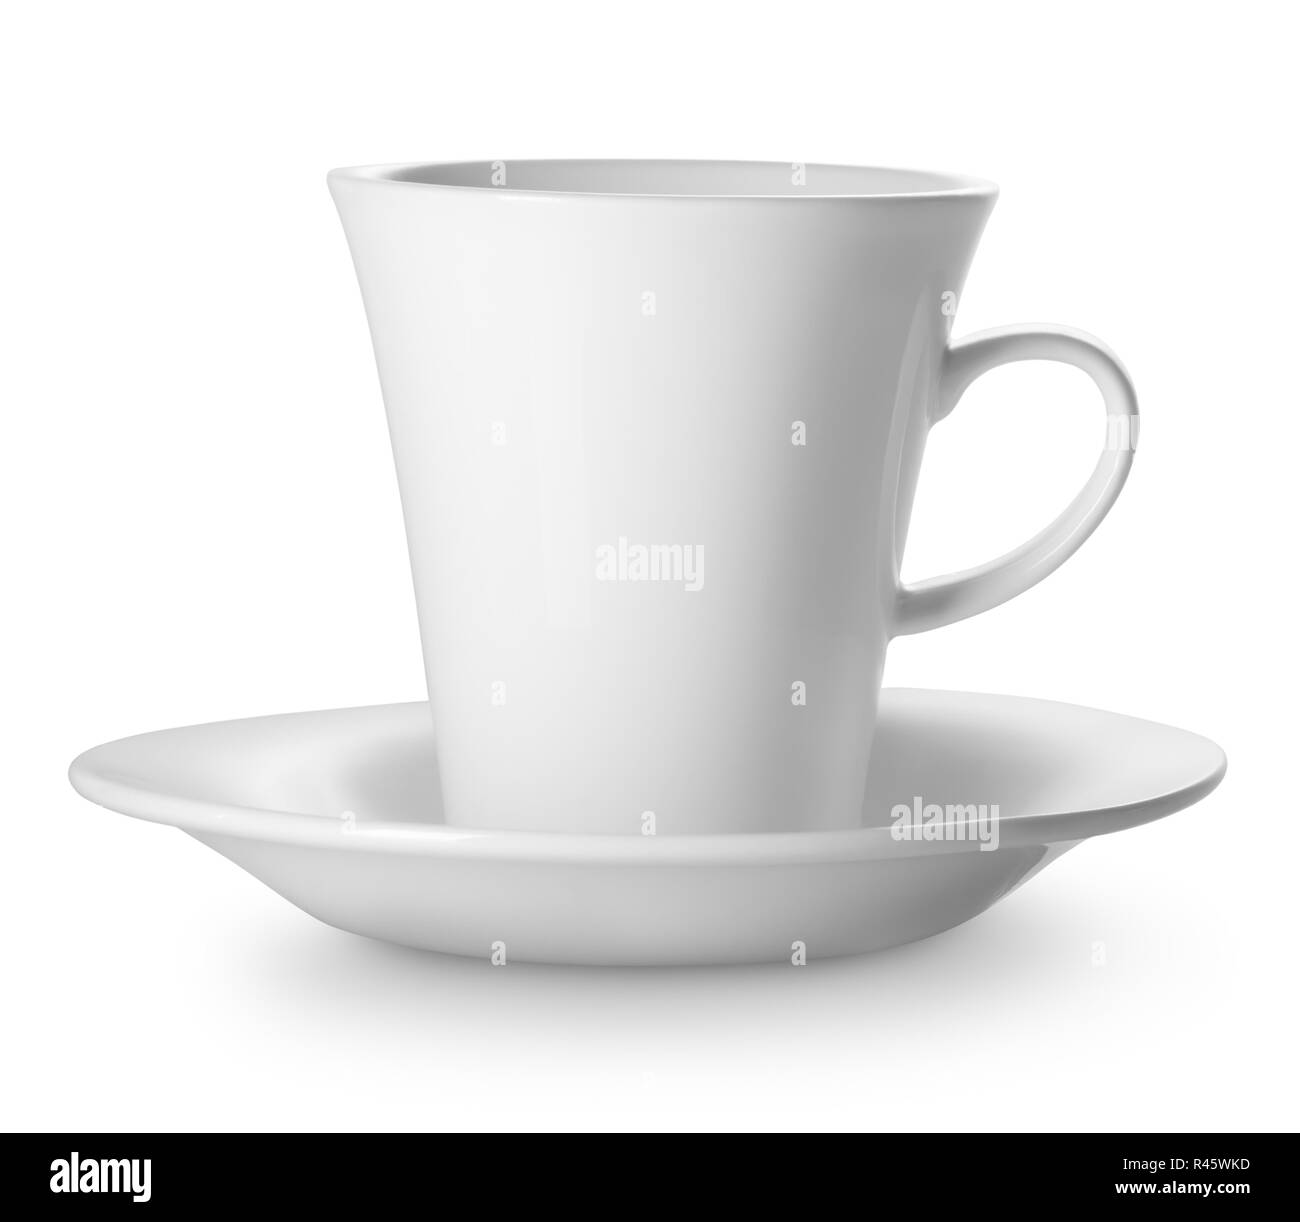 Cup on saucer - Stock Image